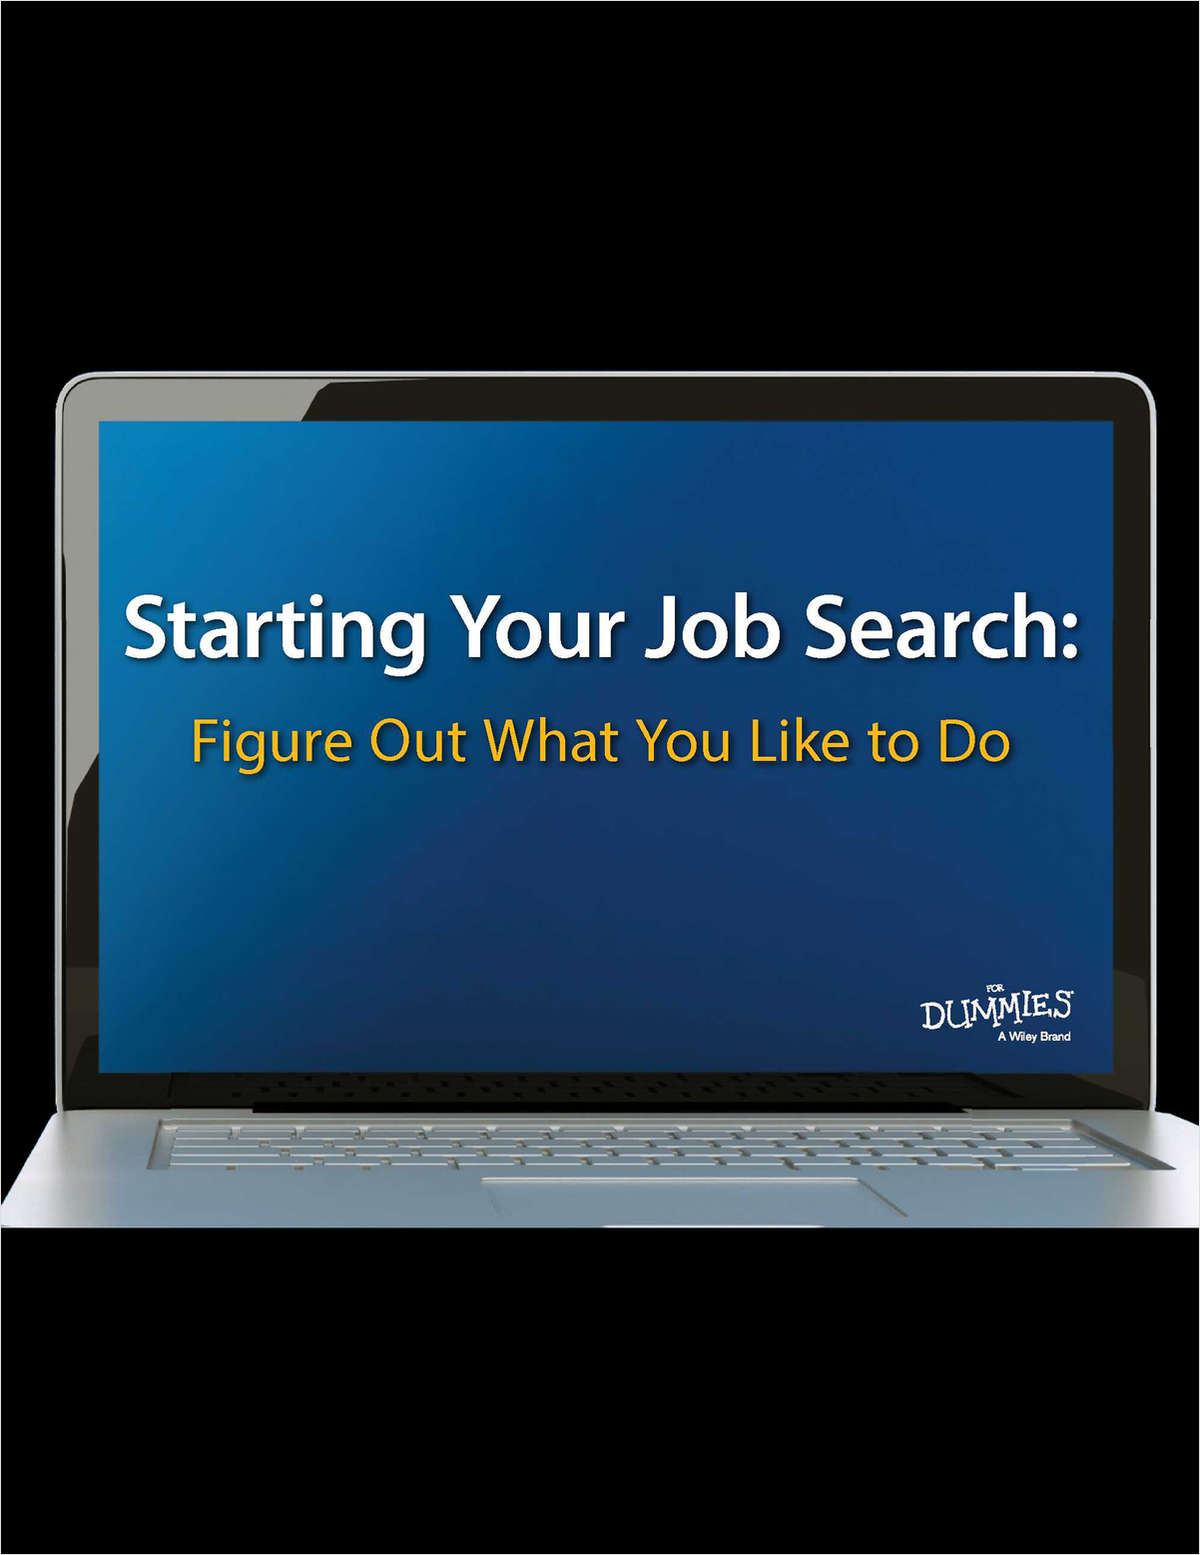 Starting Your Job Search: Figure Out What You like to Do